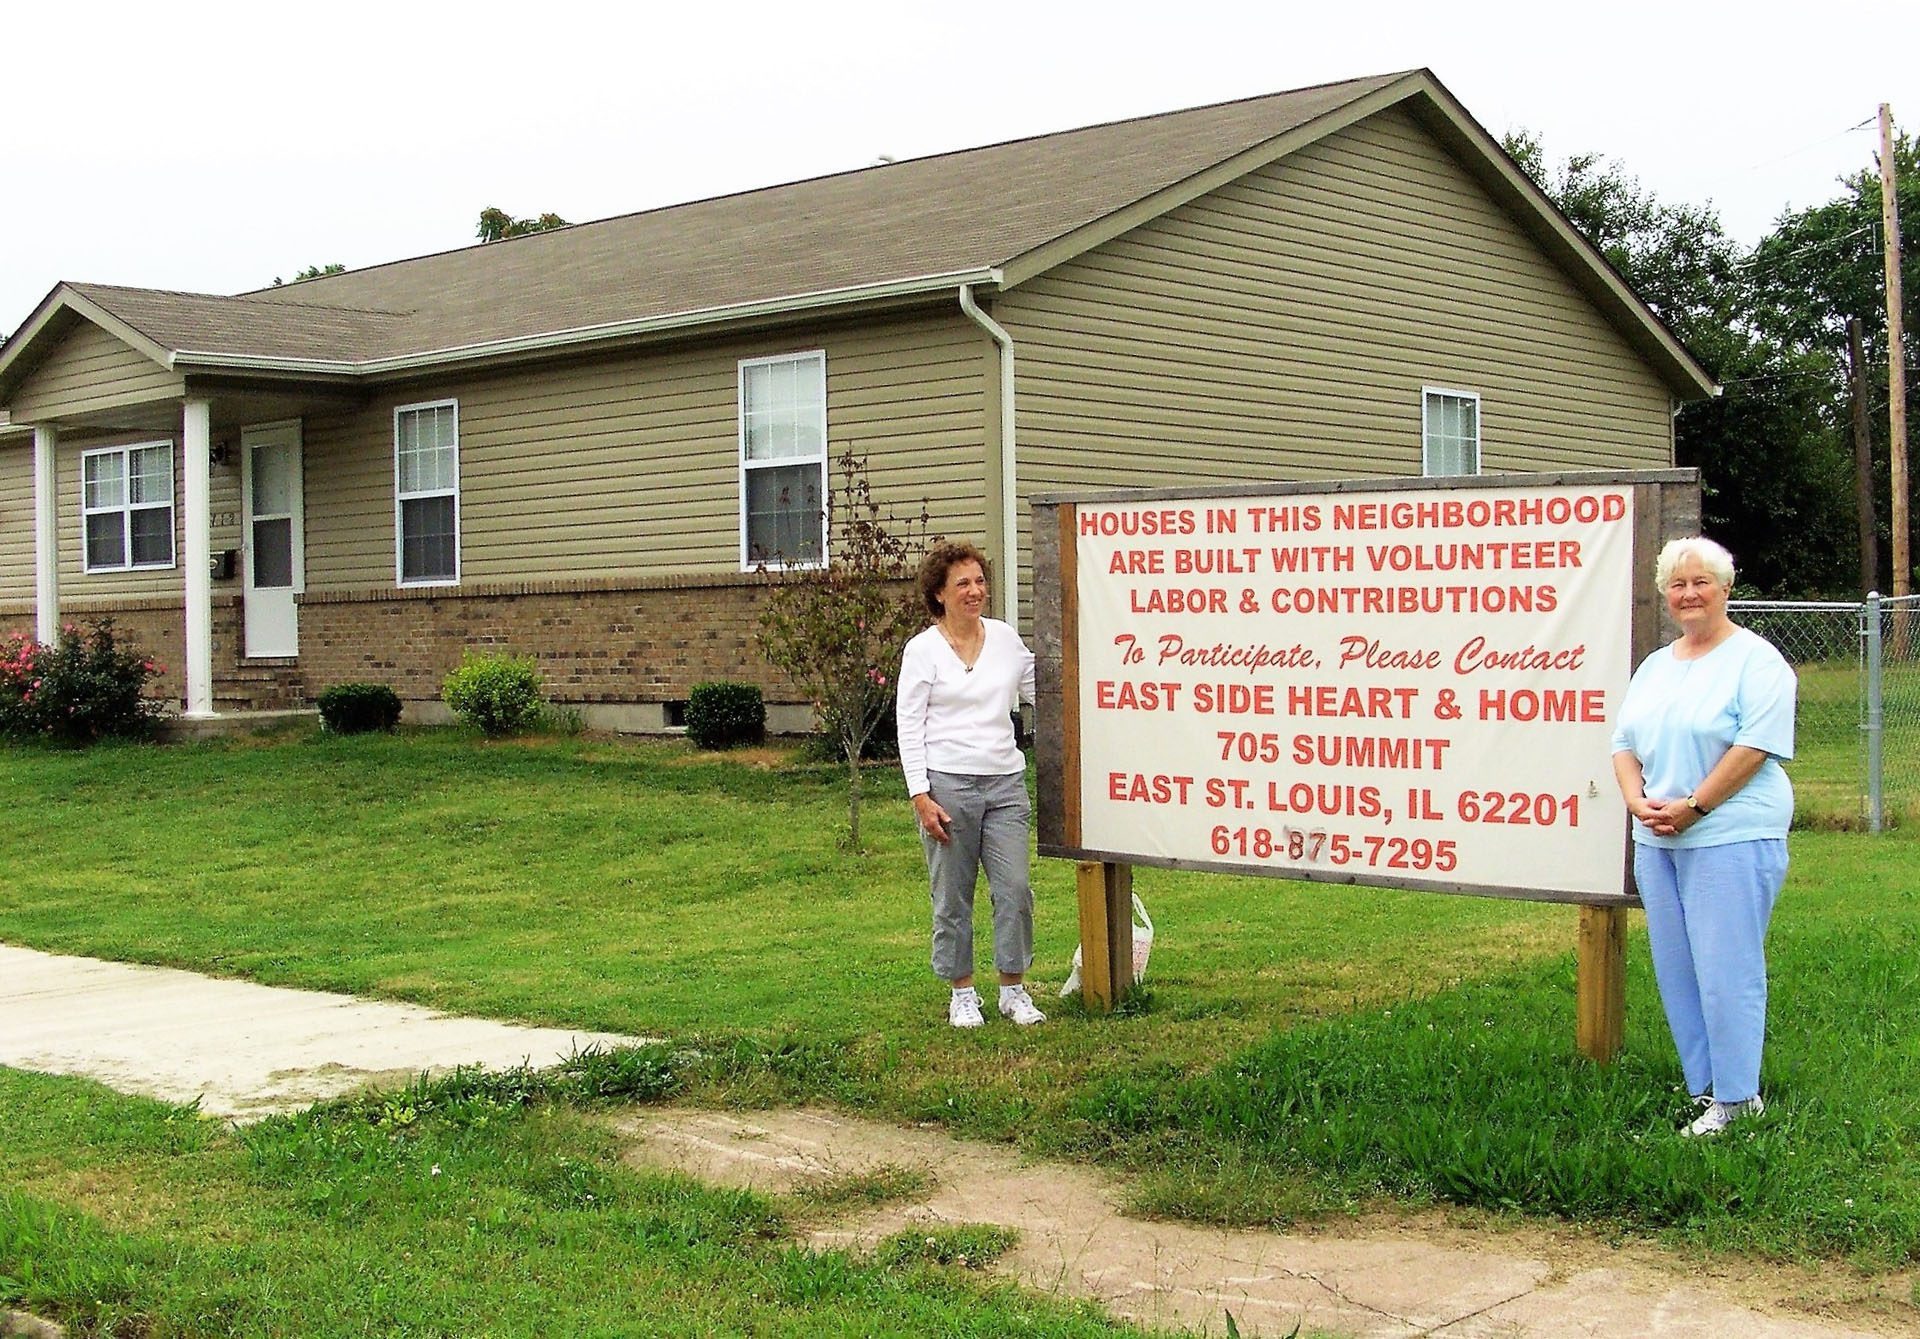 1993 – East Side Heart & Home Family Center, East St. Louis, IL